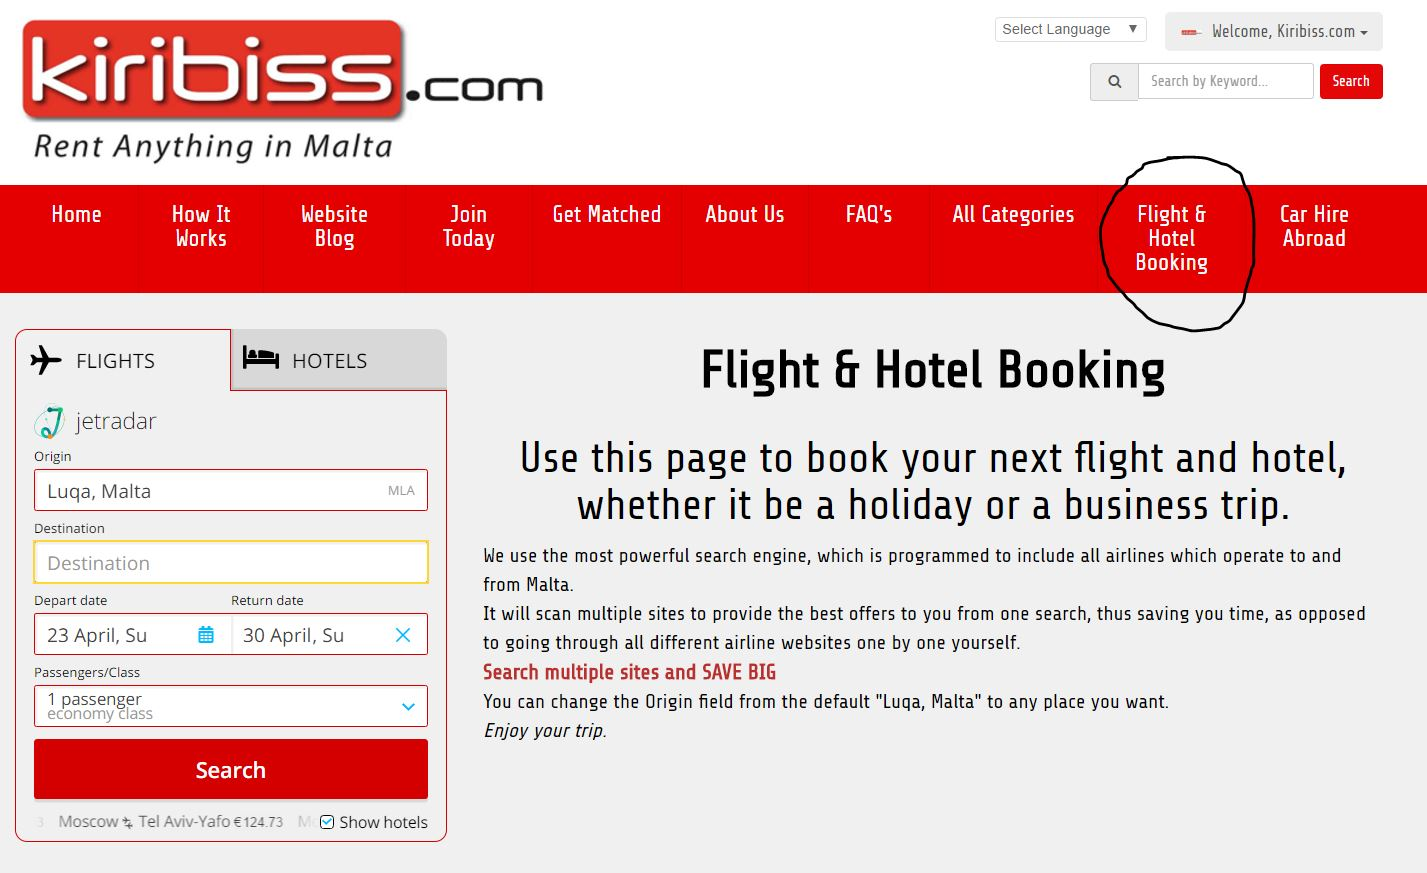 Flight & Hotel Booking search now on Kiribiss.